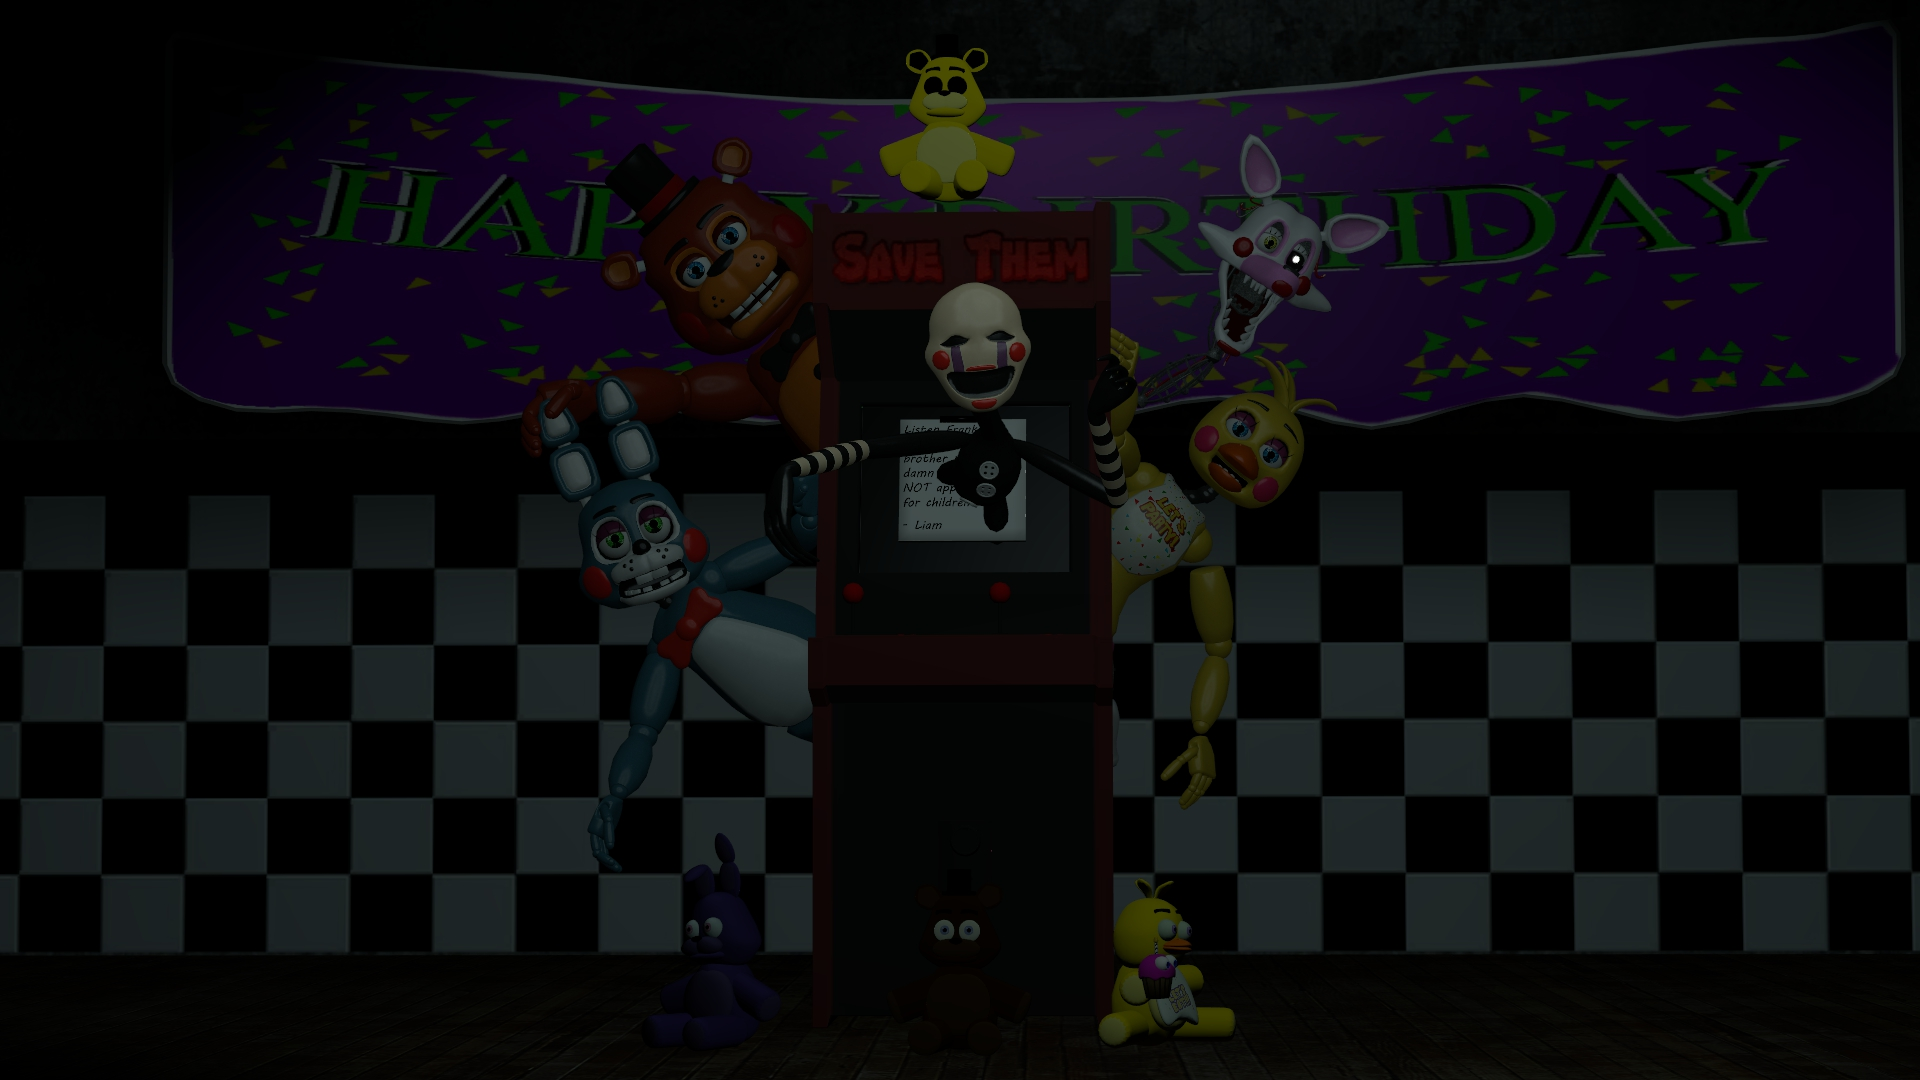 lets play a game fnaf 2 wallpaper by datfurryoverthere 1920x1080